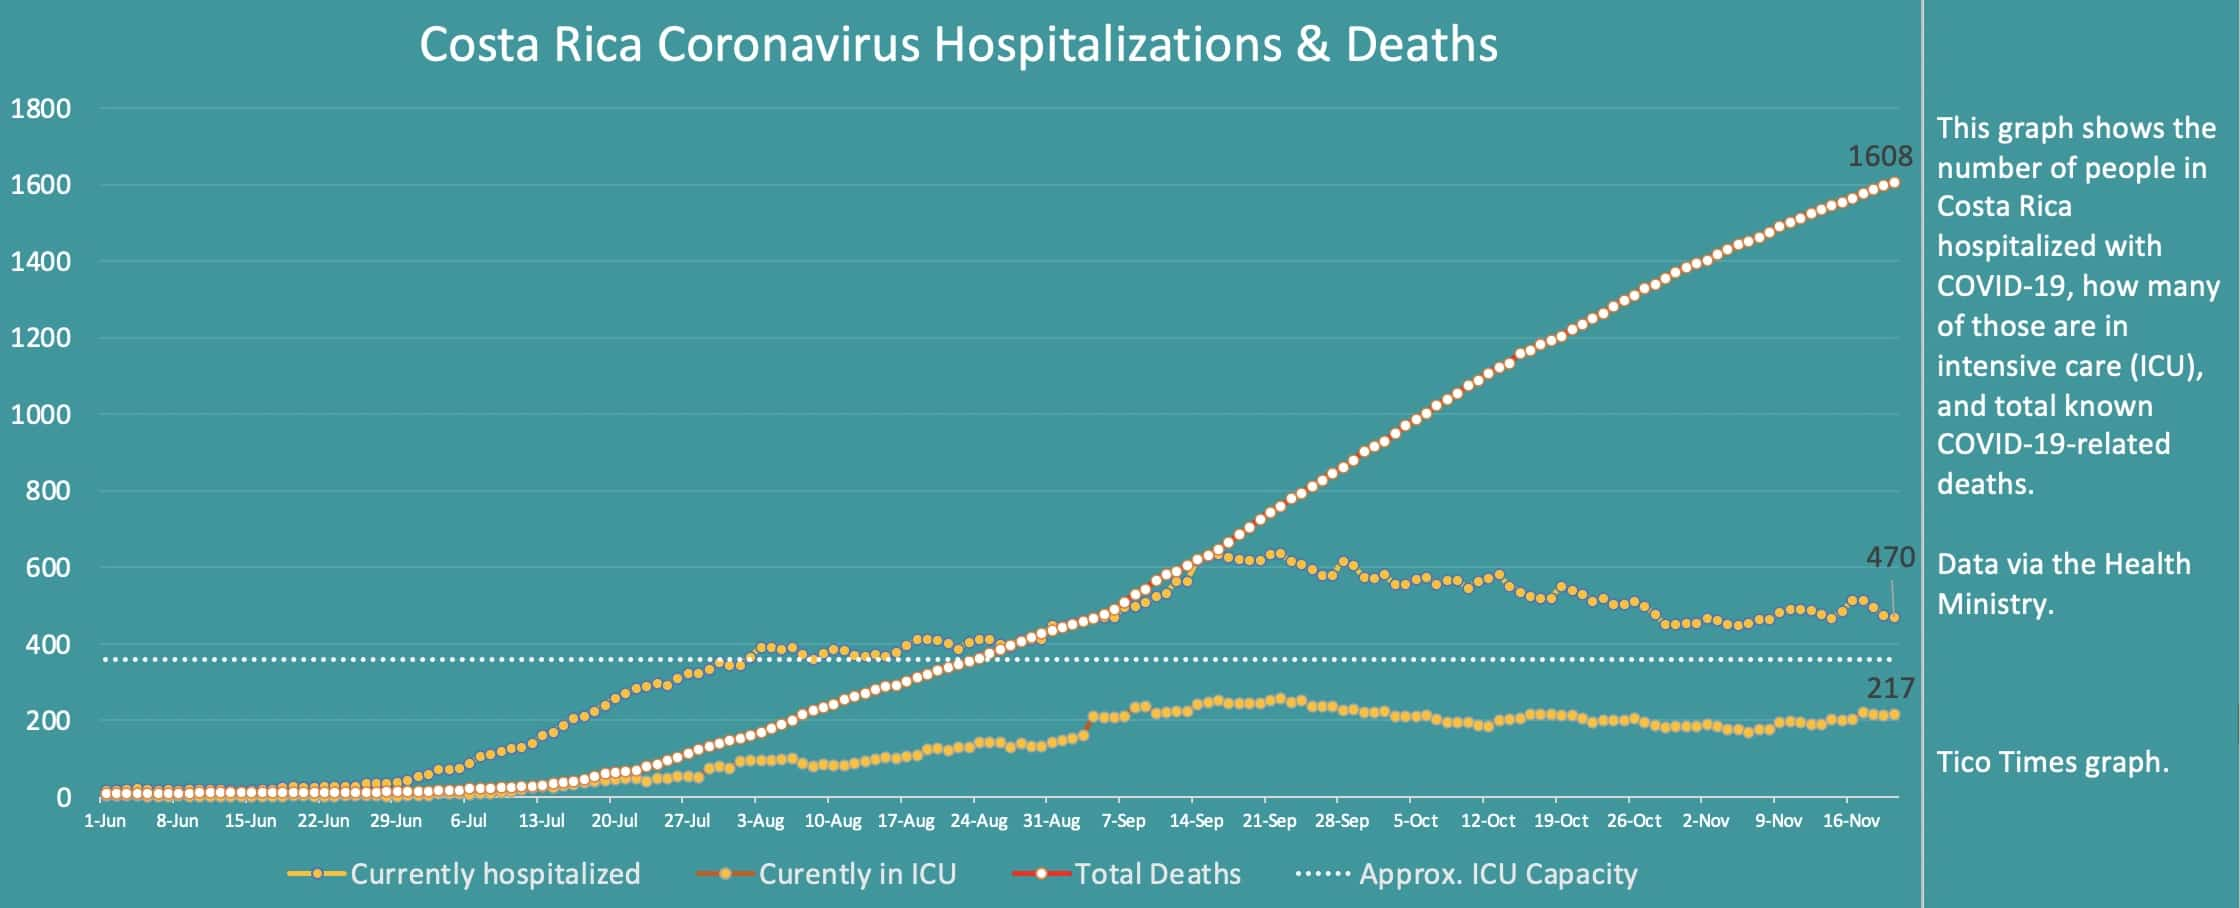 Costa Rica coronavirus hospitalizations and deaths on November 20, 2020